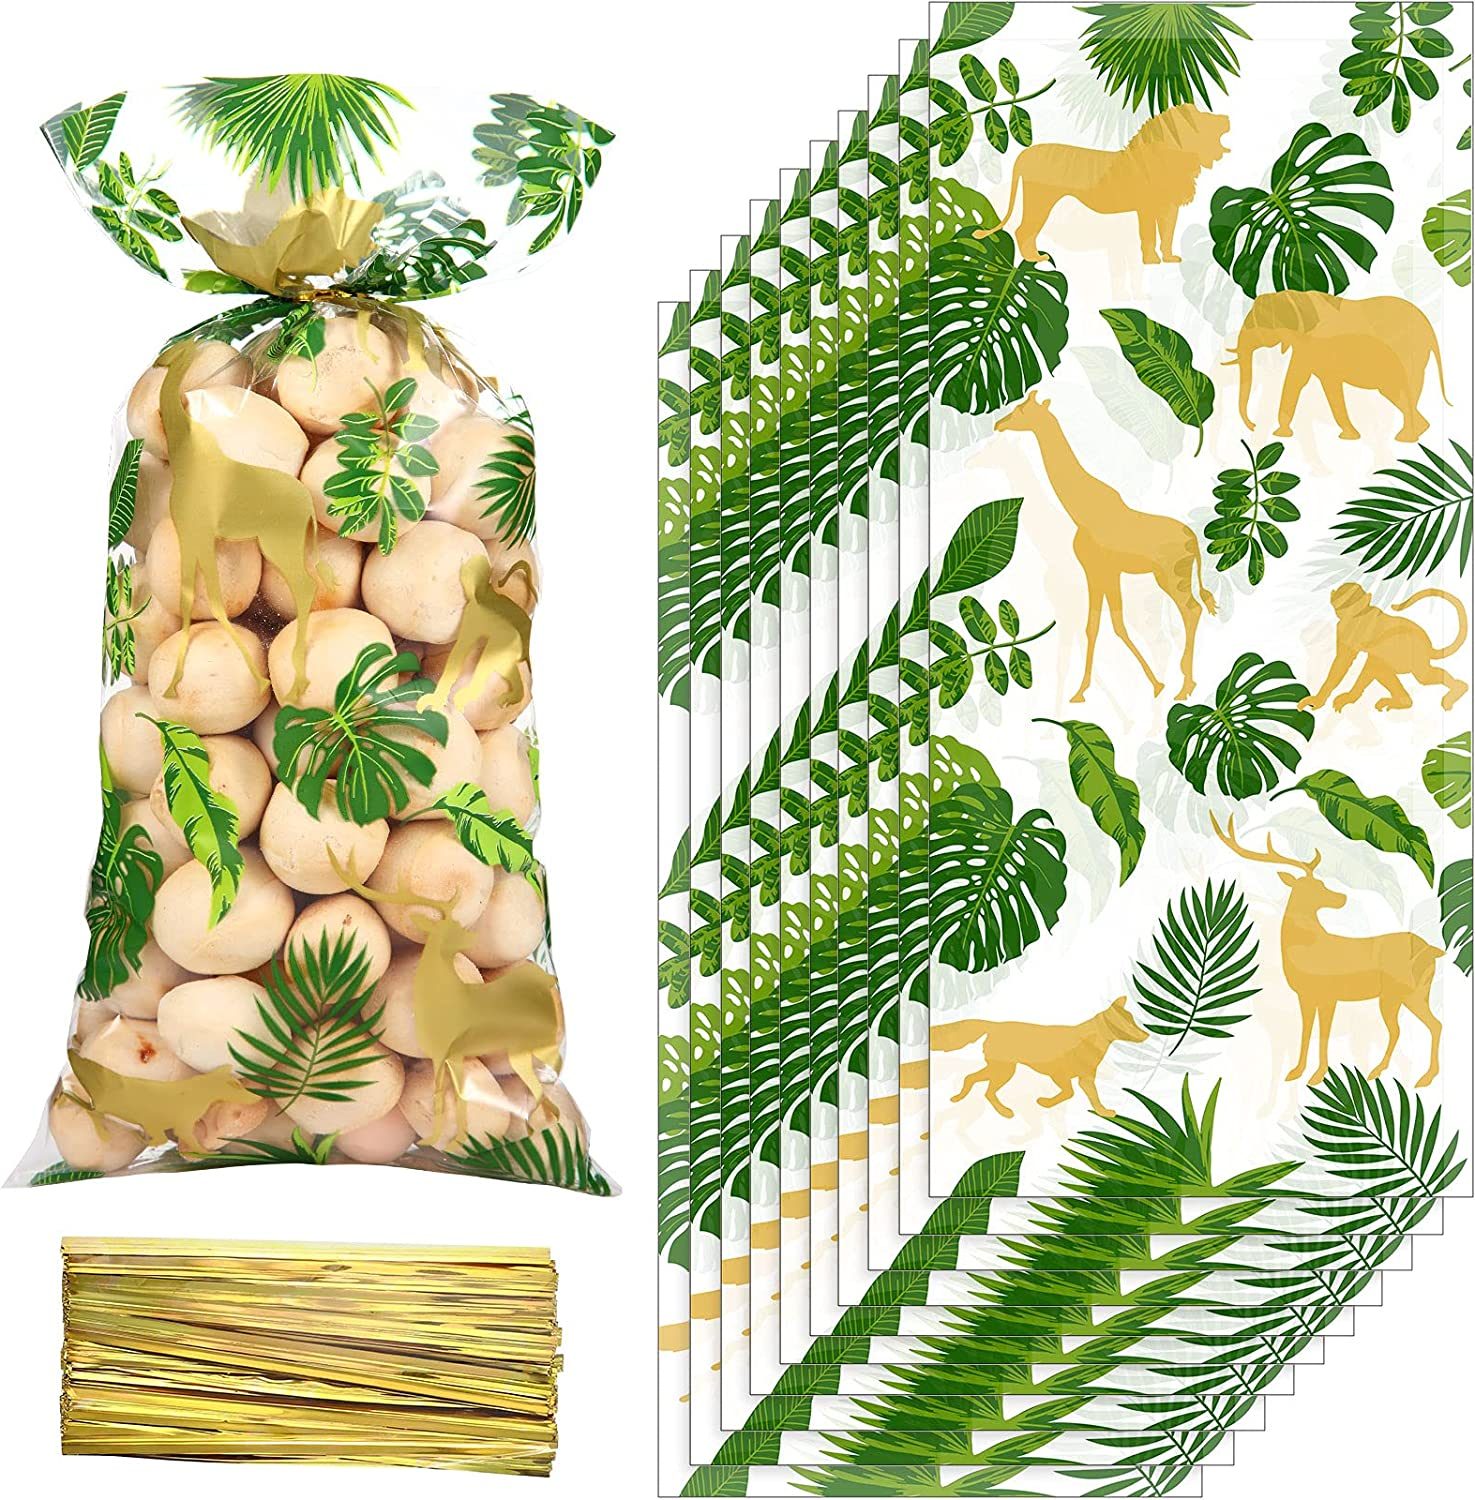 100 Pieces Jungle Animal Cellophane Treat Bags, Green Gold Safari Animal Palm Leaves Plastic Candy Goodie Bags with 100 Gold Twist Ties for Wild One Safari Baby Shower Birthday Party Favors